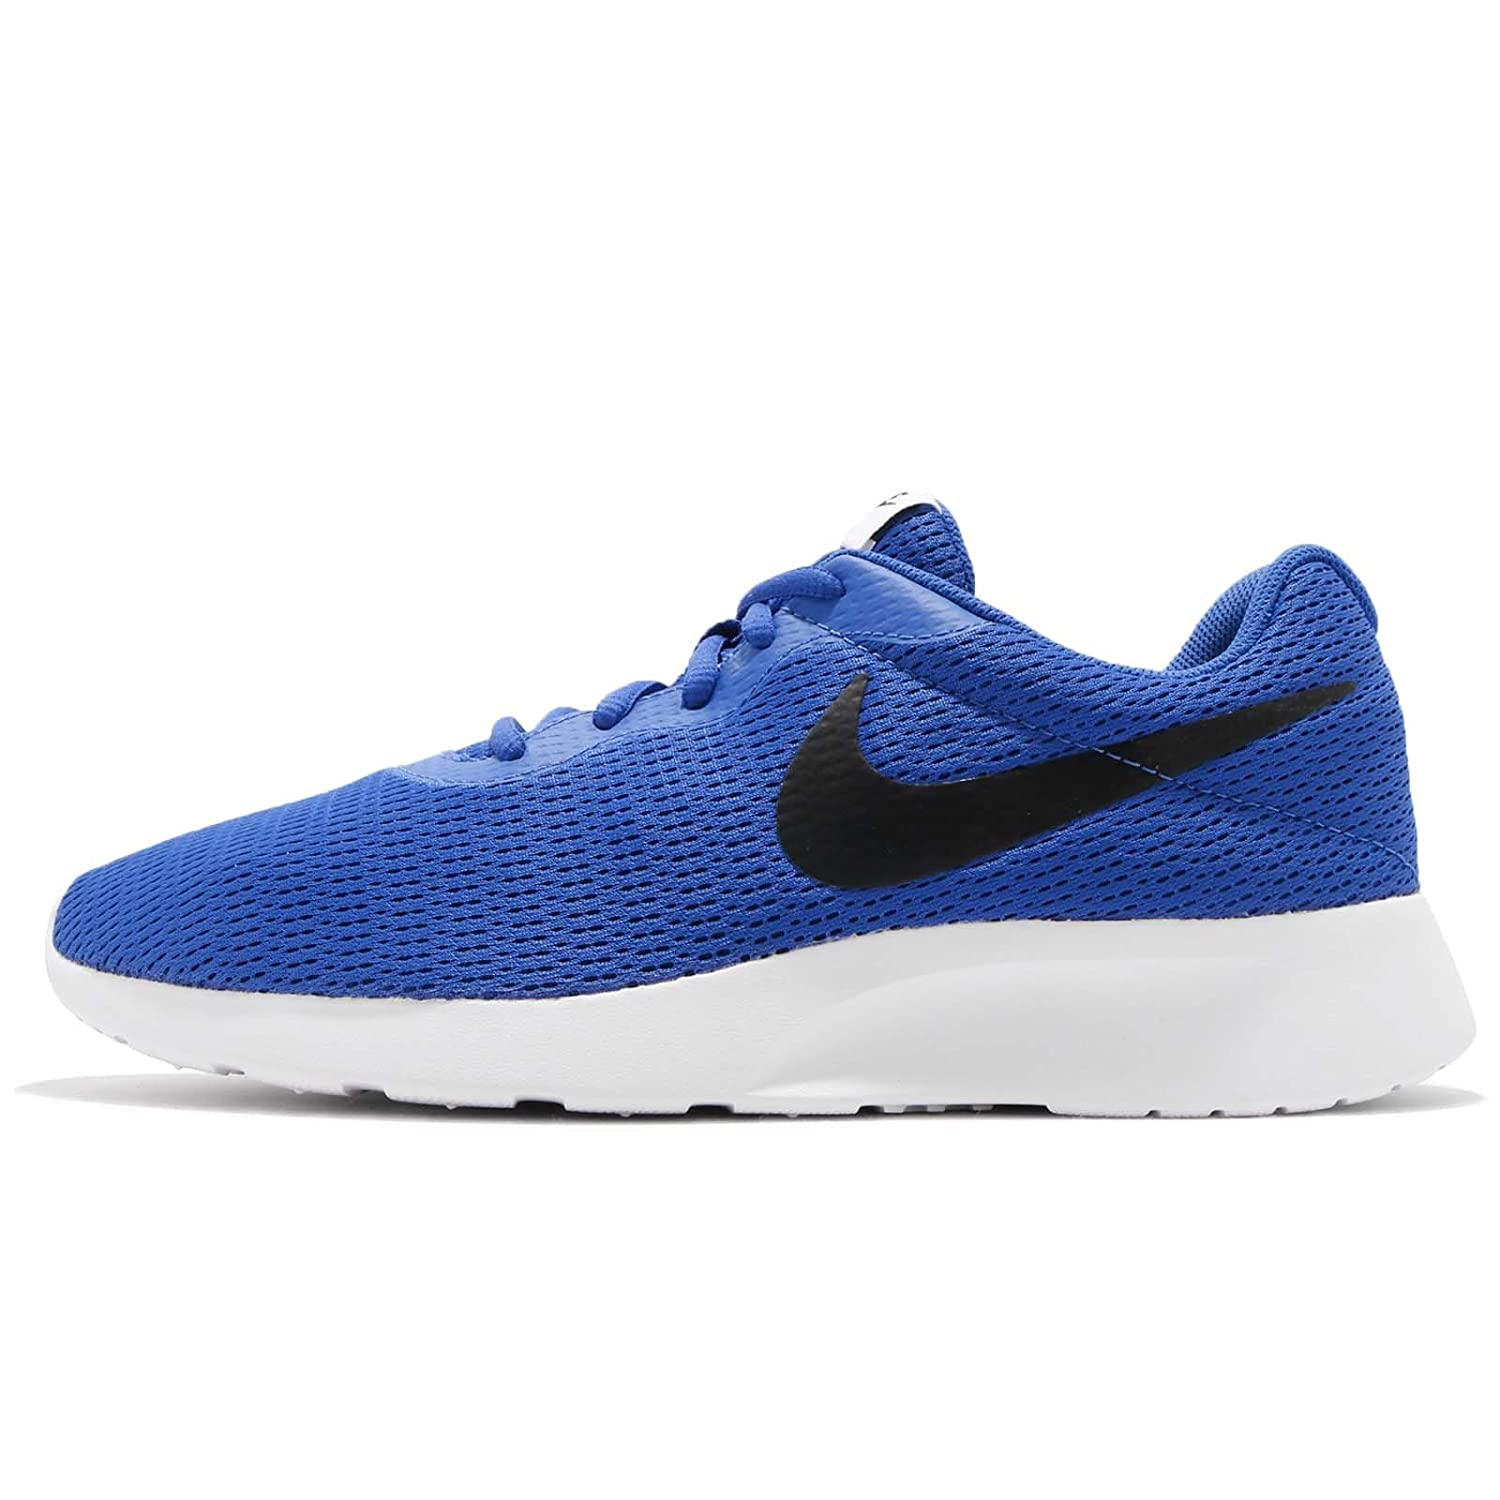 NIKE Men's Tanjun Sneakers, Breathable Textile Uppers and Comfortable Lightweight Cushioning B072P66ZLG 7.5  M US Game Royal/Black-white